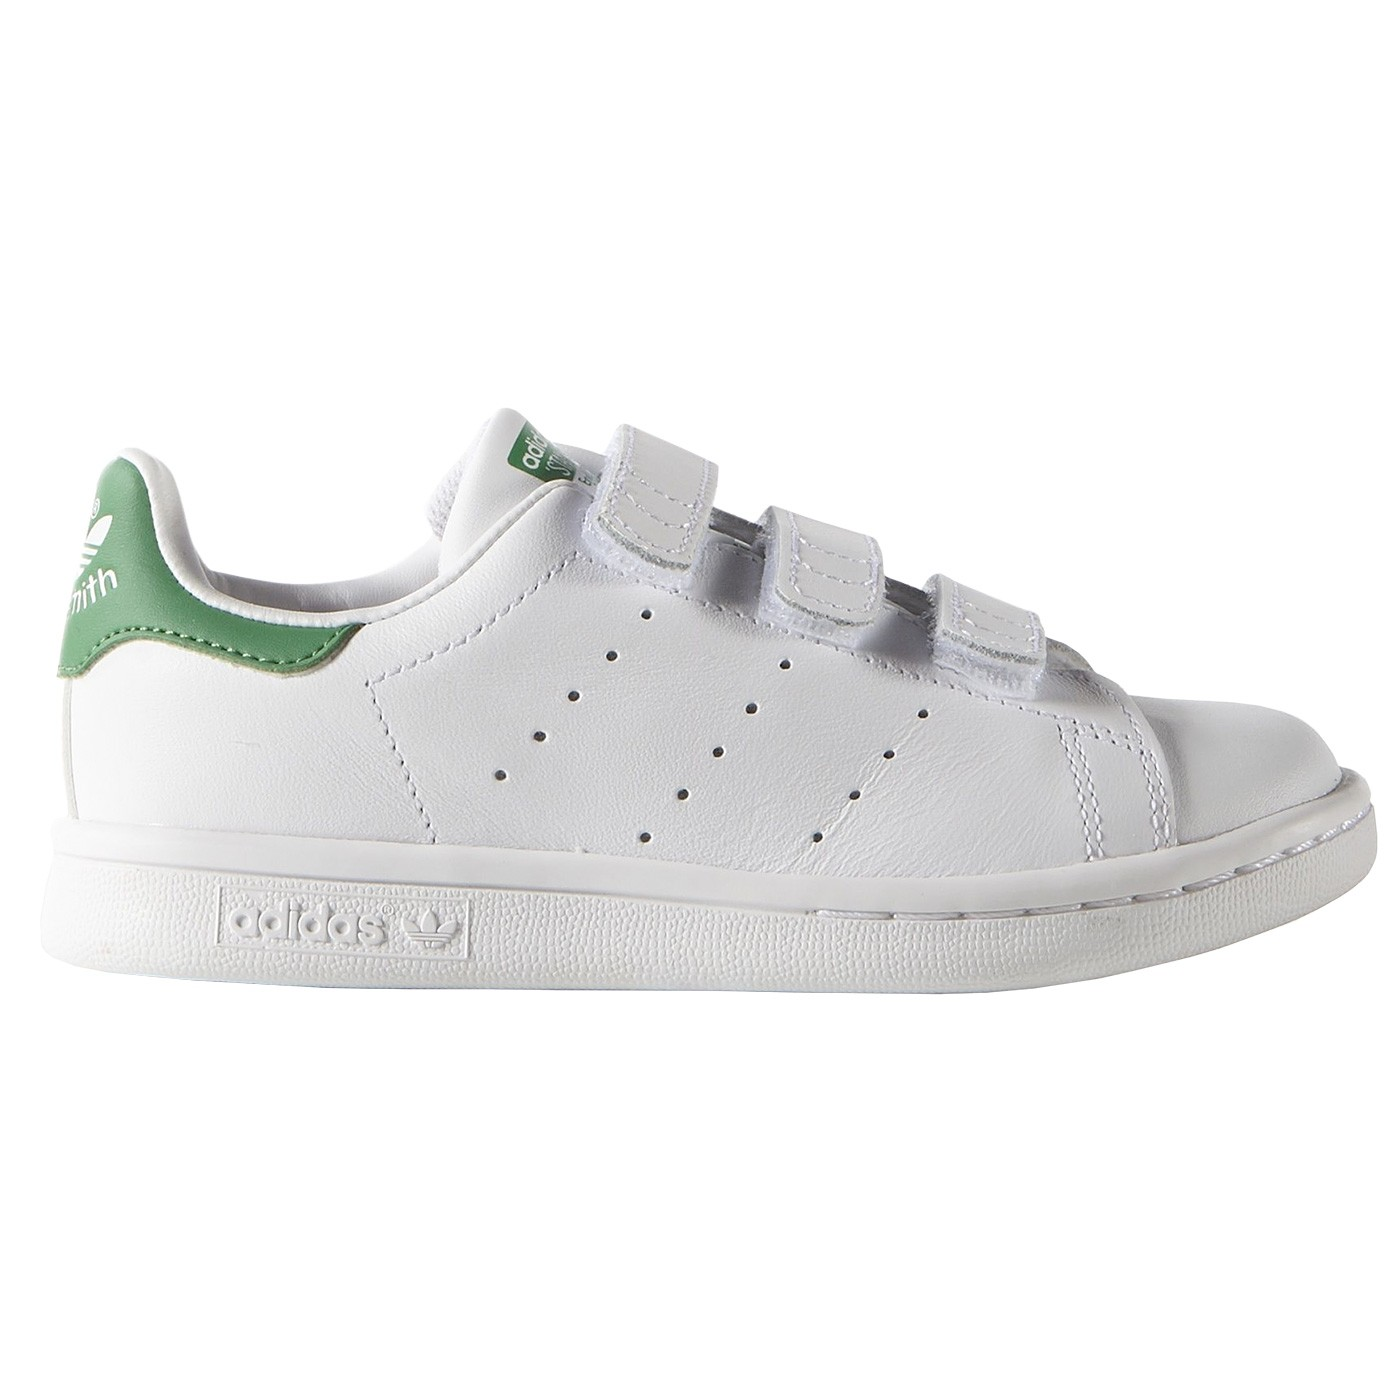 size 40 11a5f 36410 Sneakers Adidas Stan Smith Junior with velcro white-green